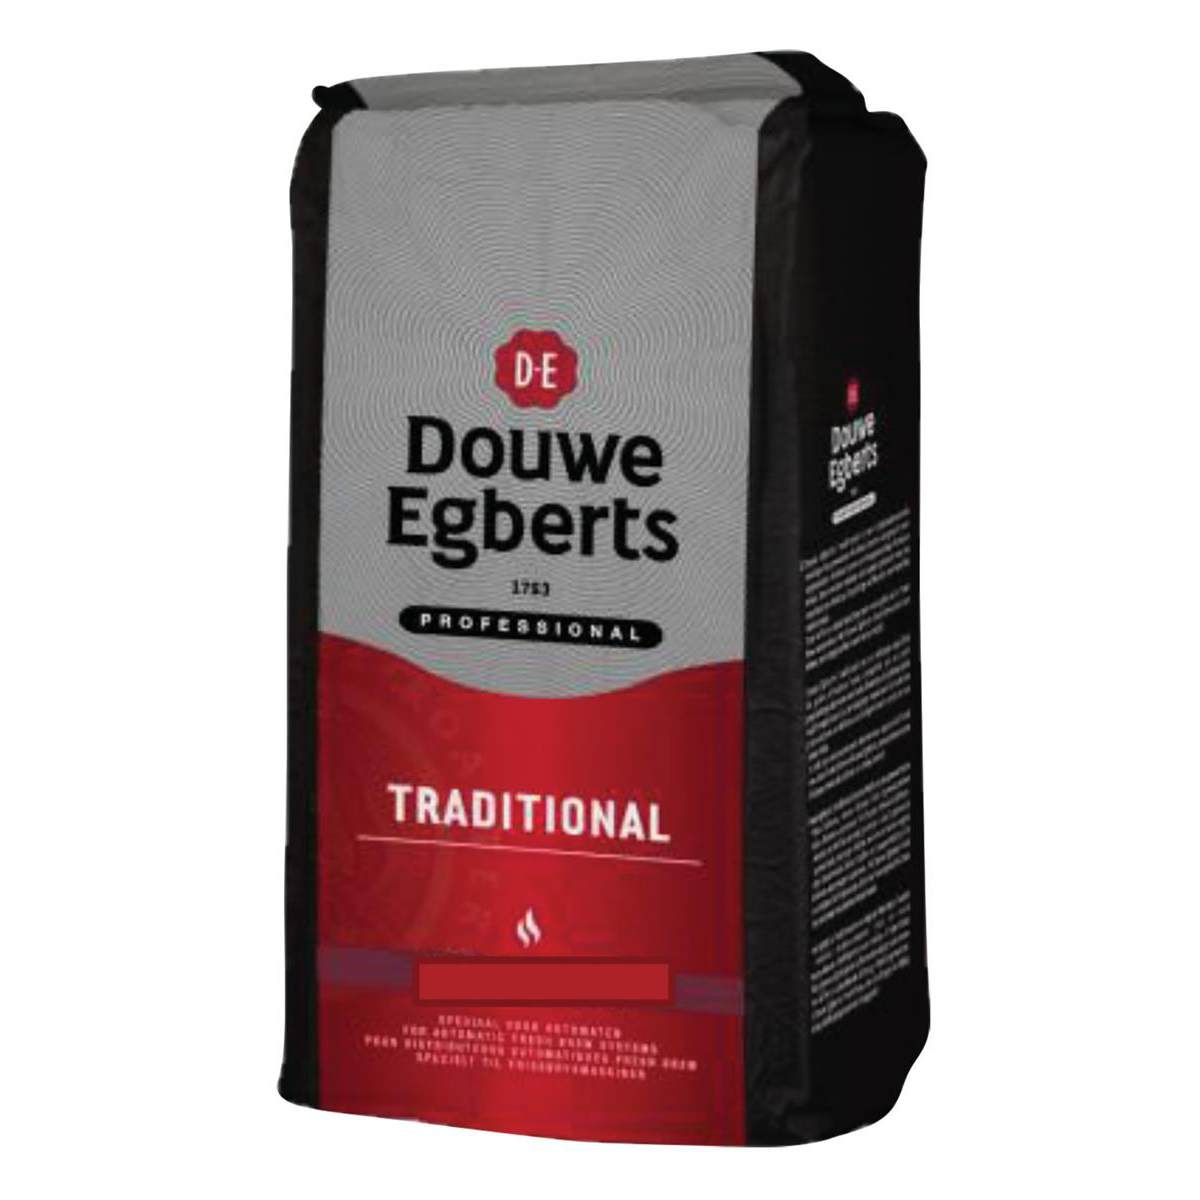 Coffee Douwe Egberts Traditional Freshbrew Filter Coffee 1kg Ref 434924